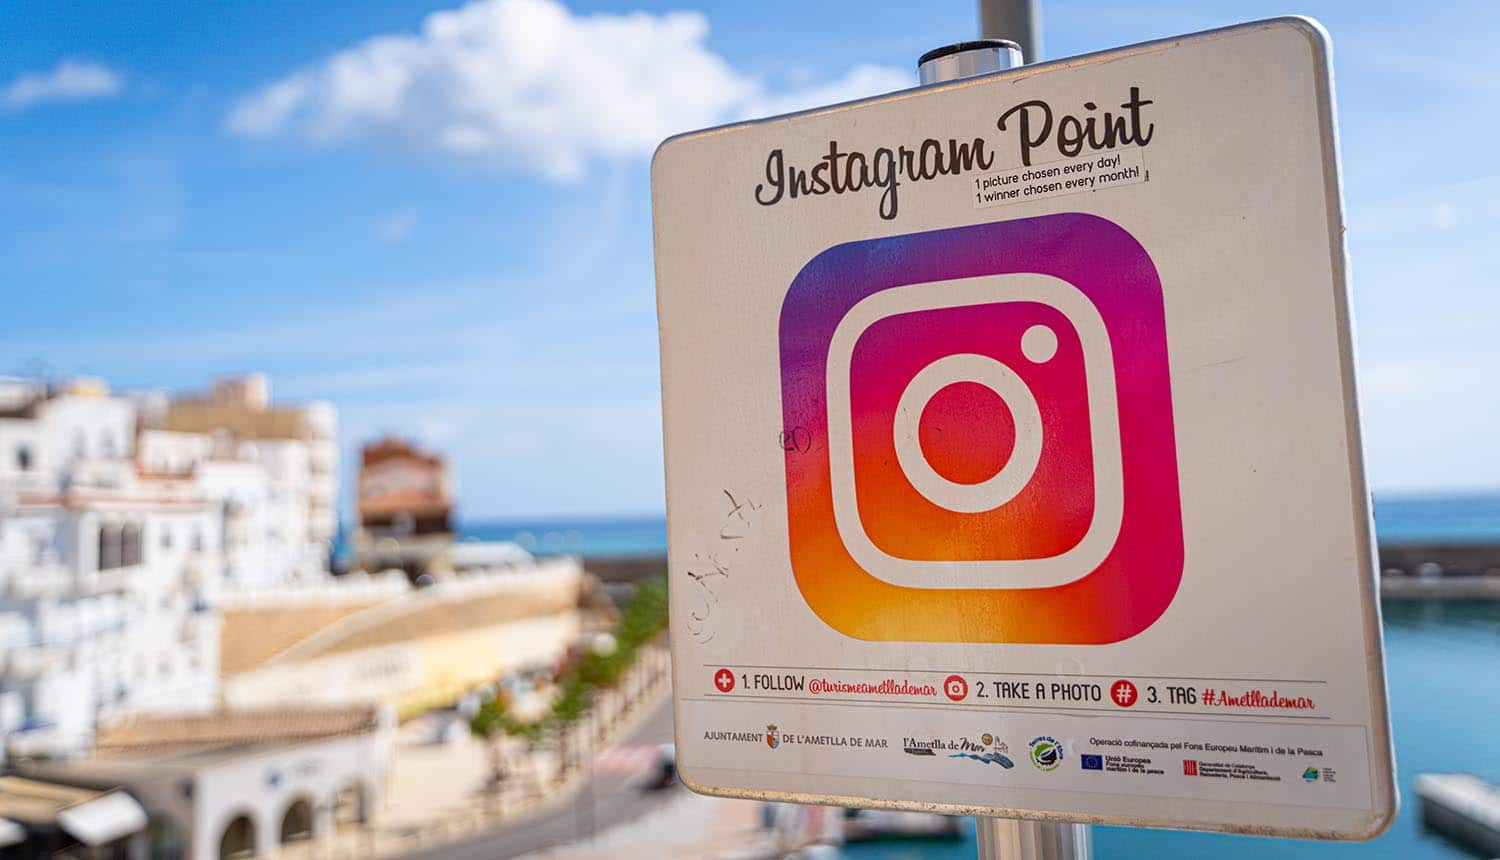 Instagram point with a photogenic view of the port showing data collection for Instagram ads